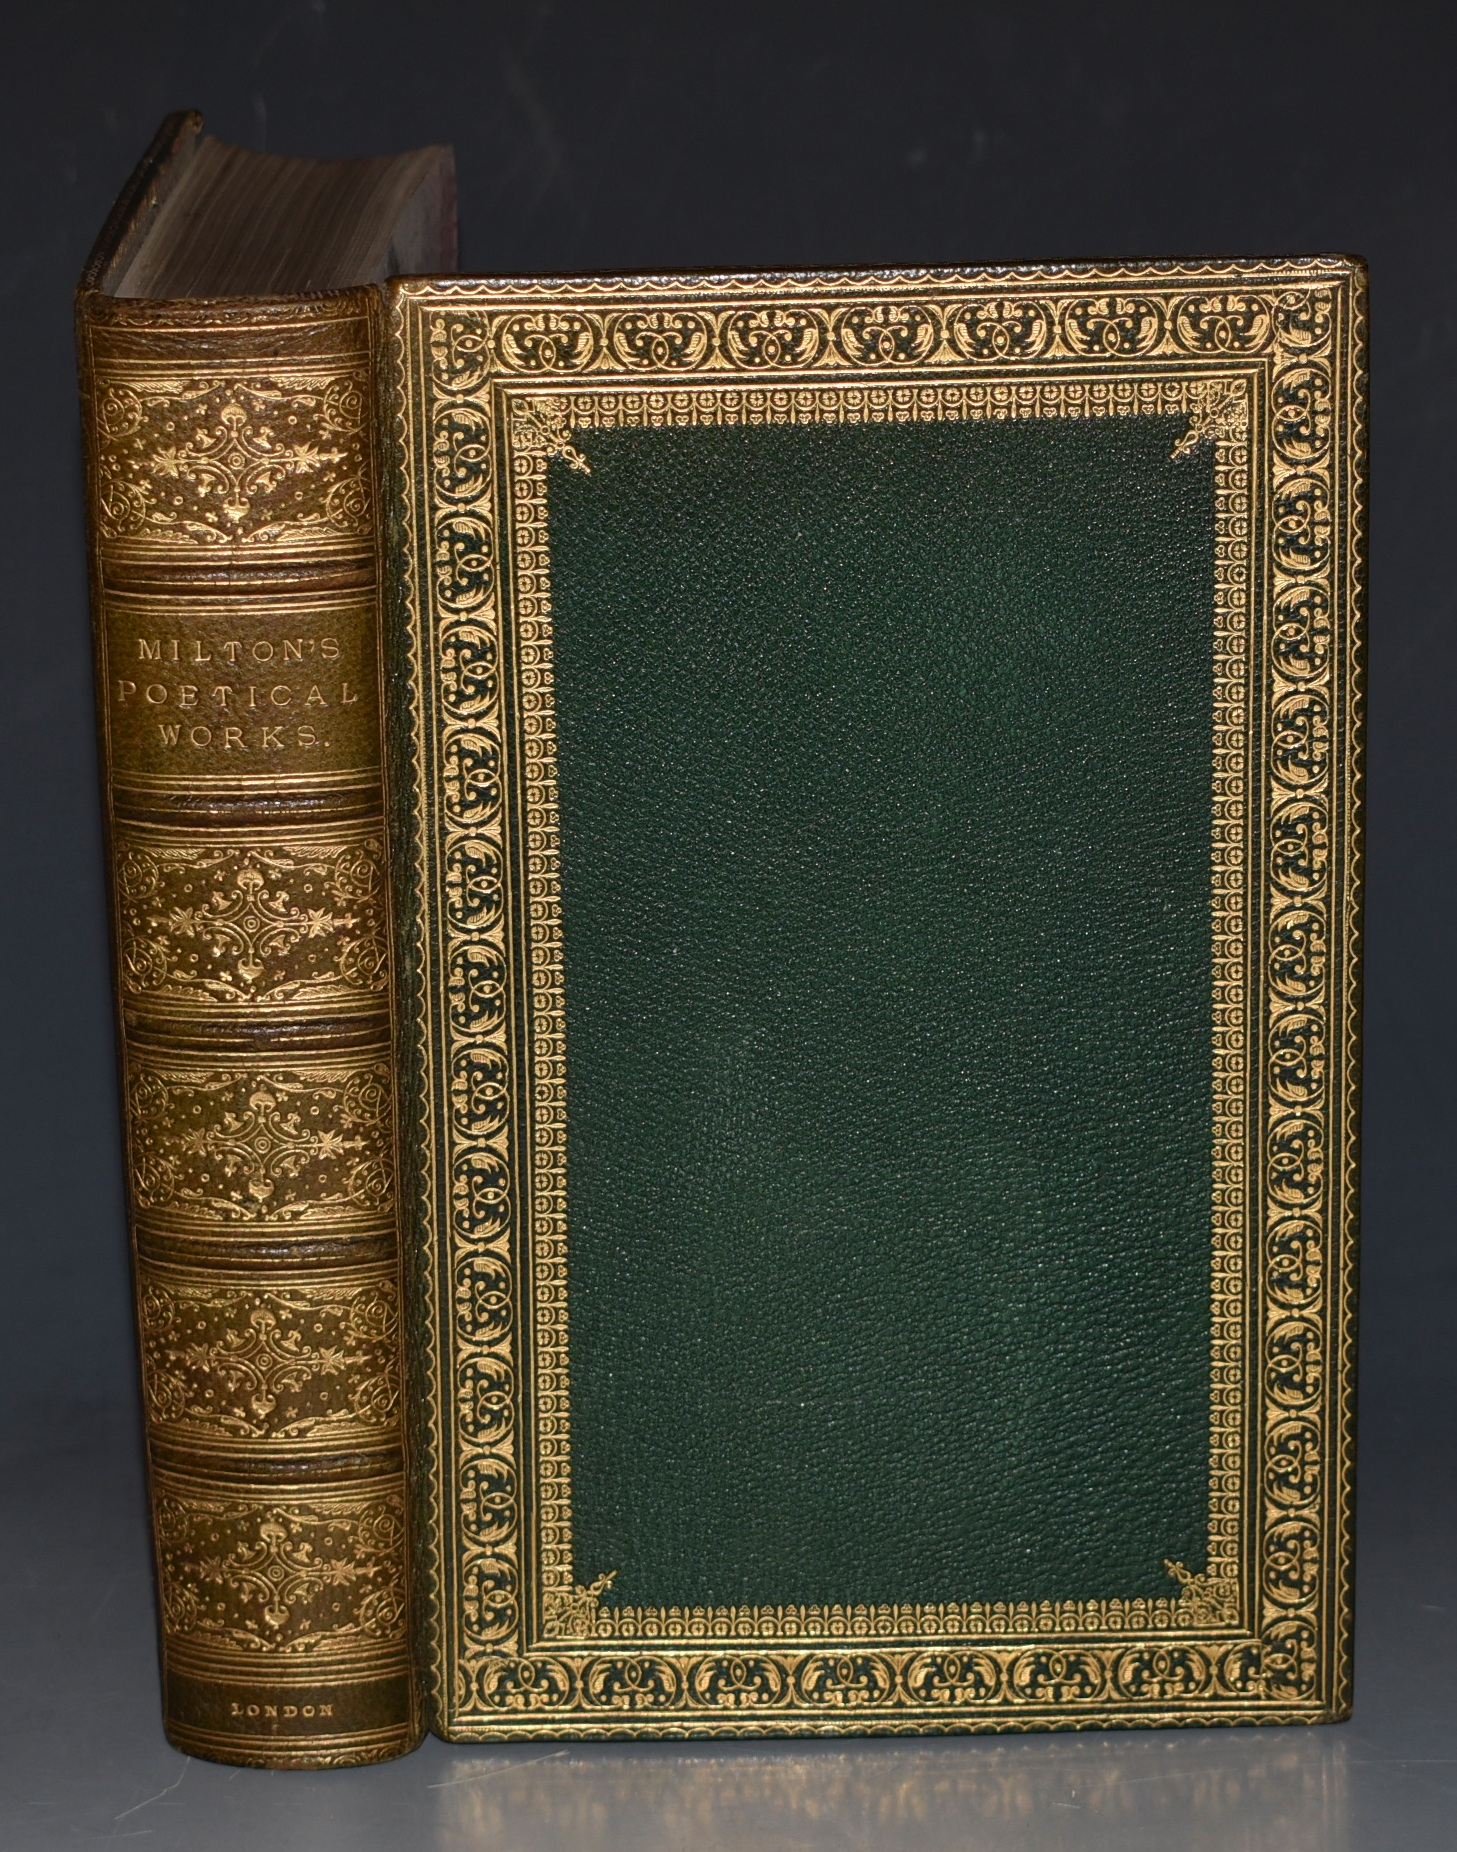 Image for The Poetical Works of John Milton Printed from the Original Editions with a Life of the Author by A. Chalmers.